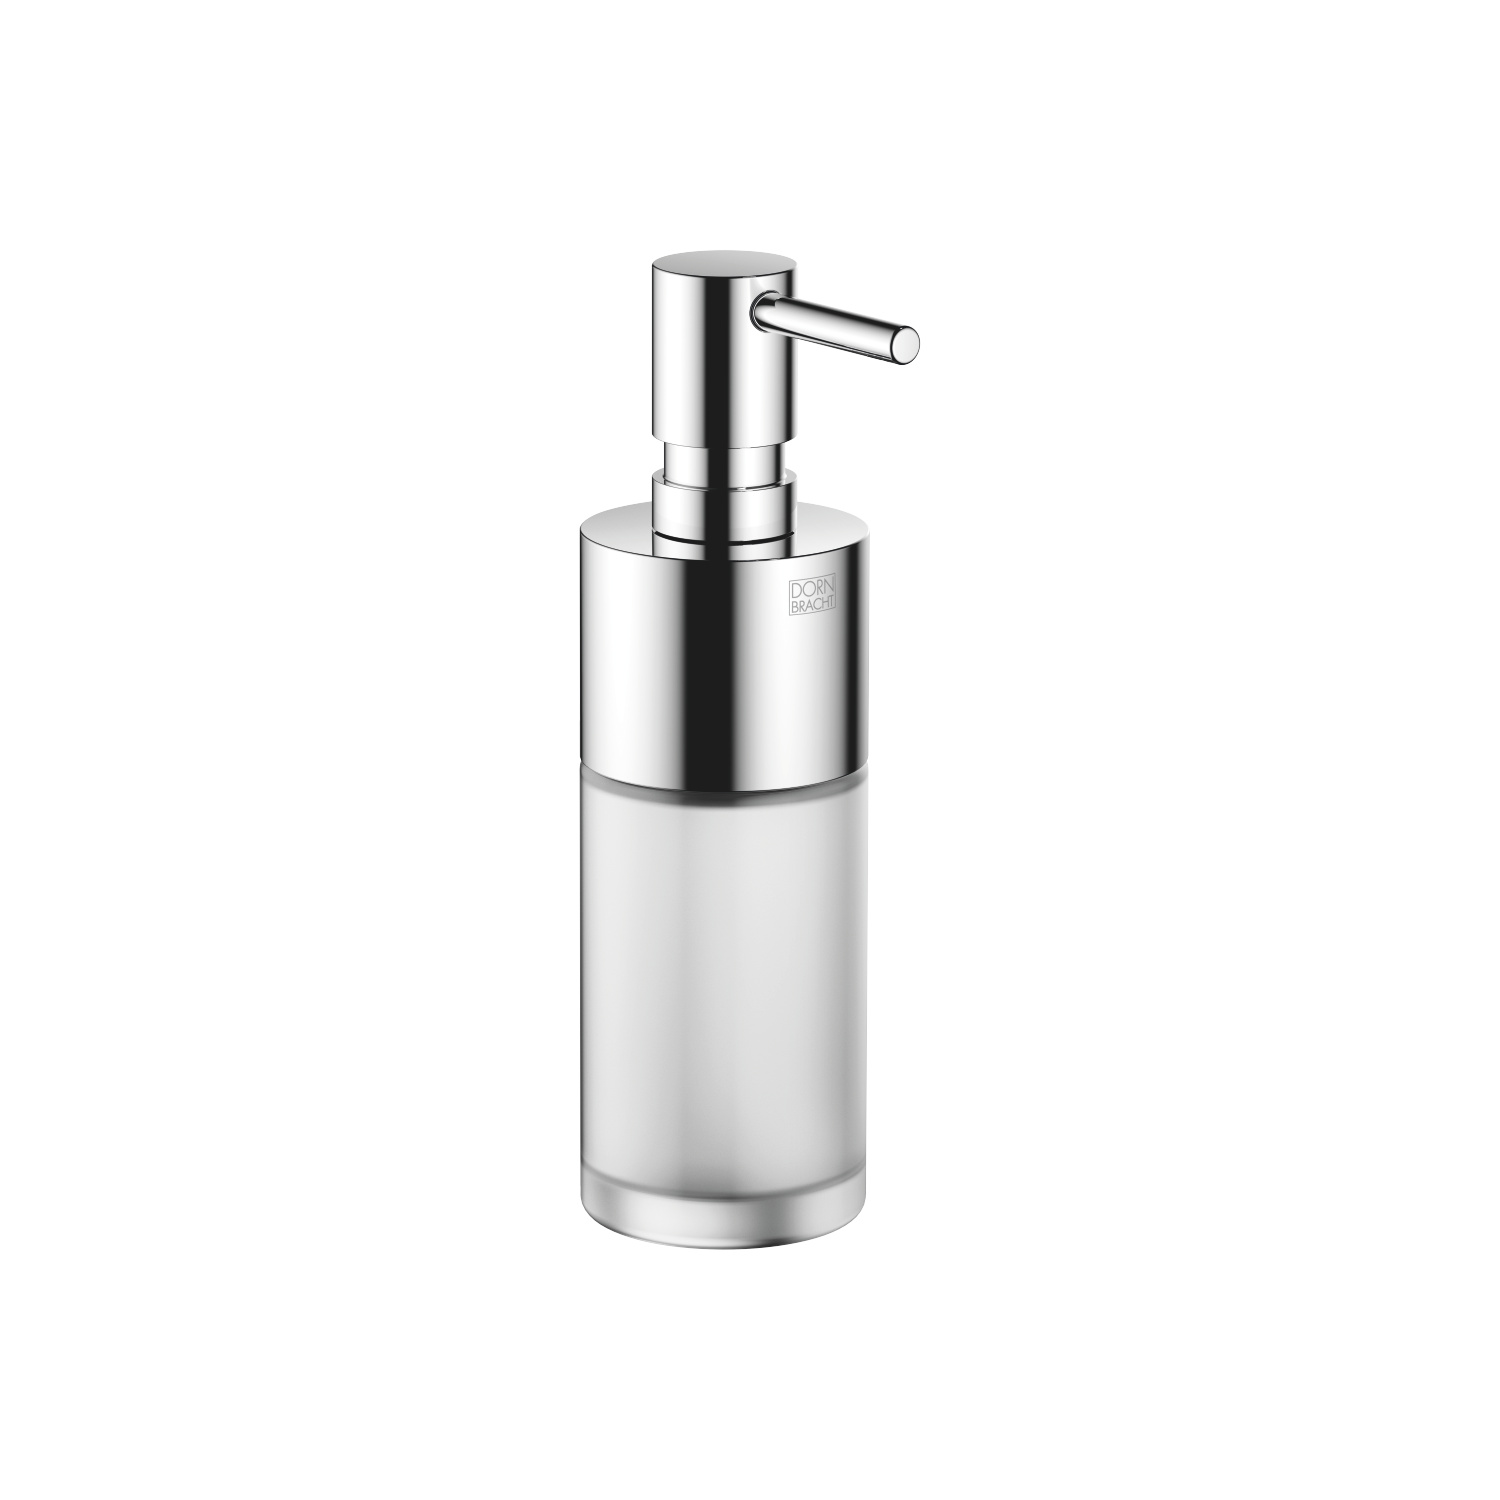 Dispenser free-standing model - polished chrome